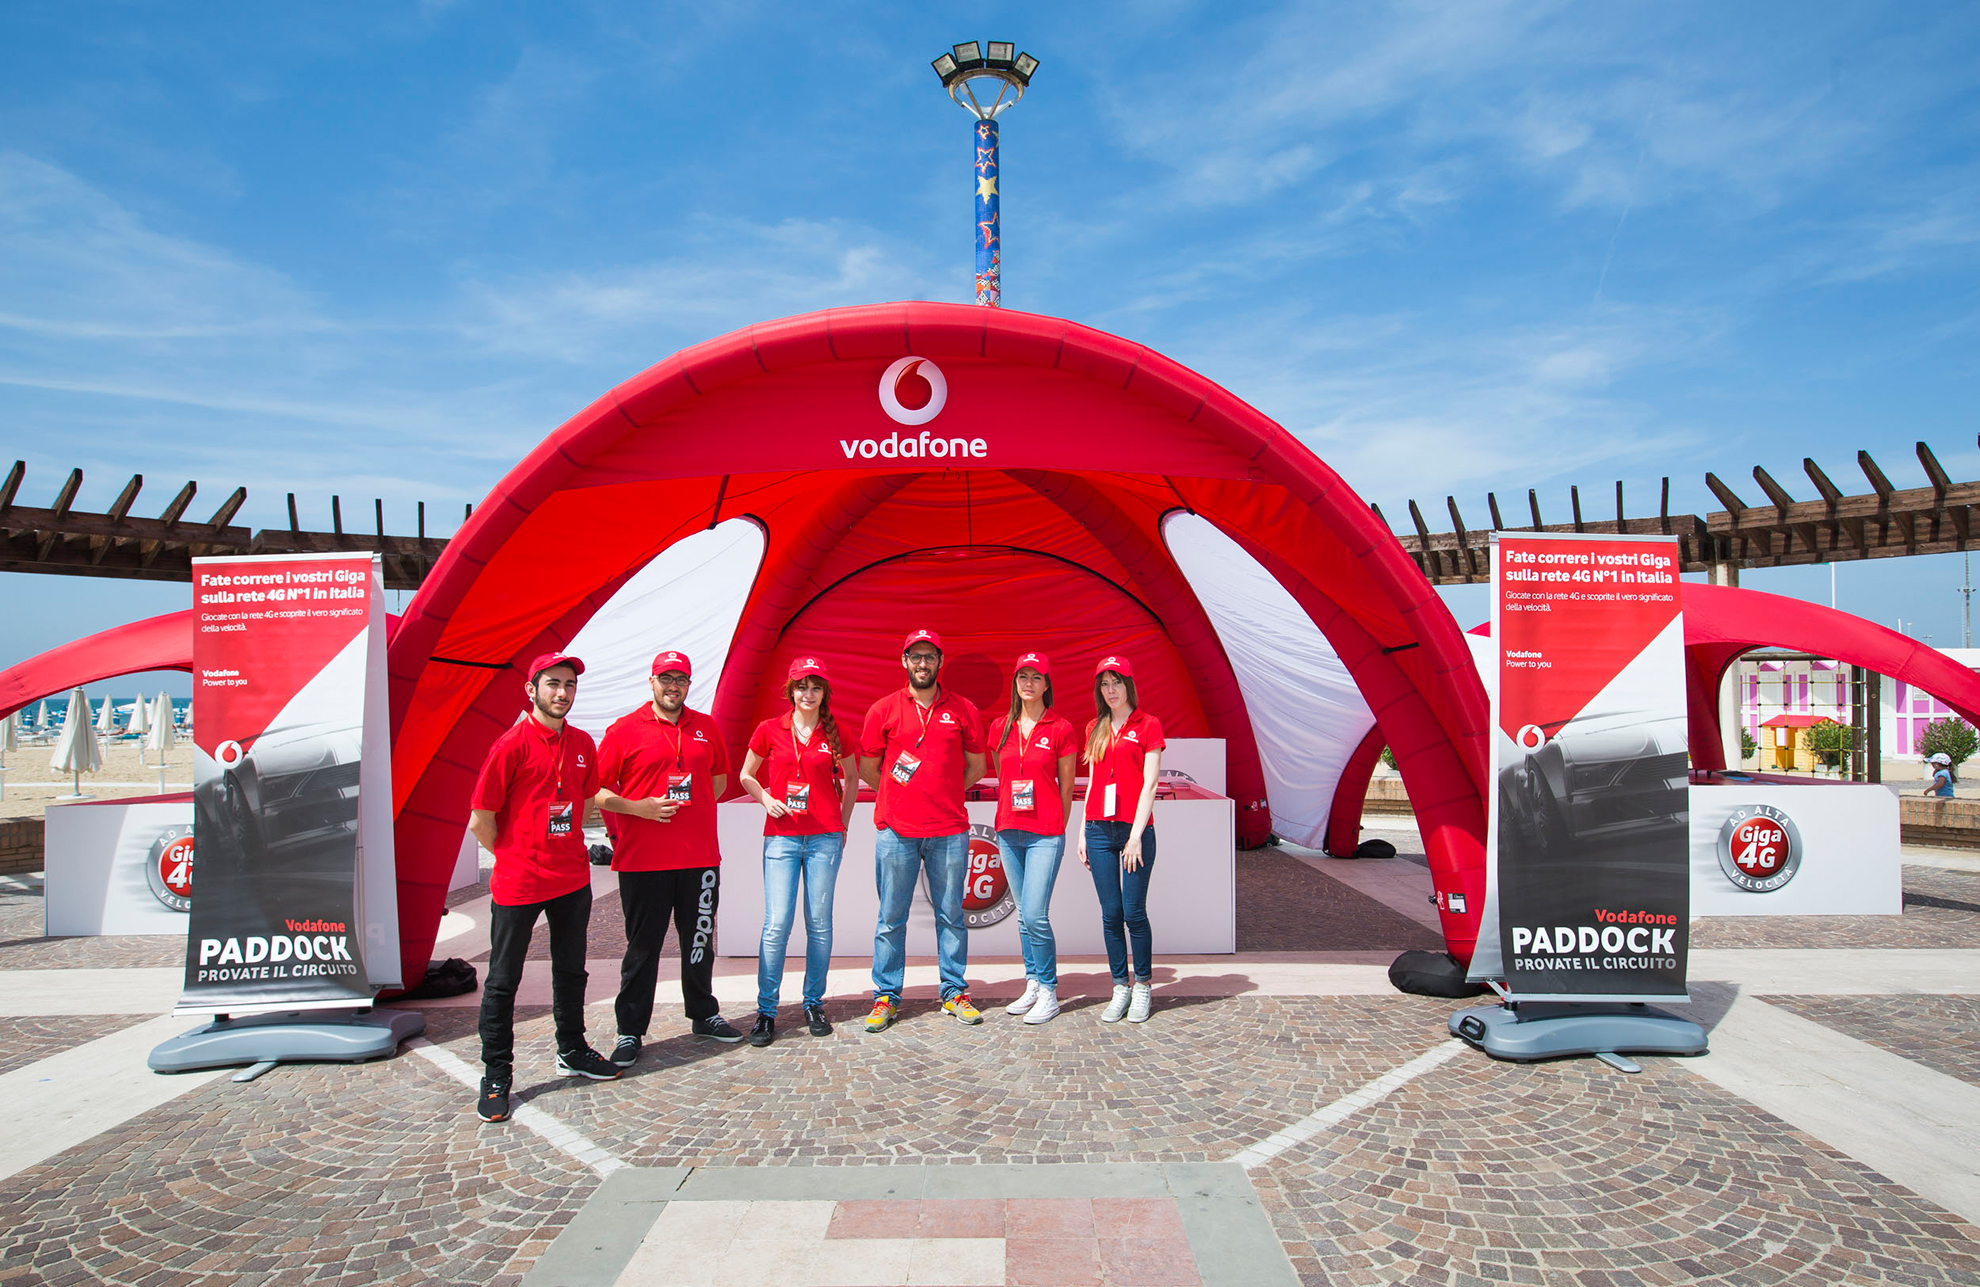 vodafone-4g-race-brand-activation-digital-engagement-1